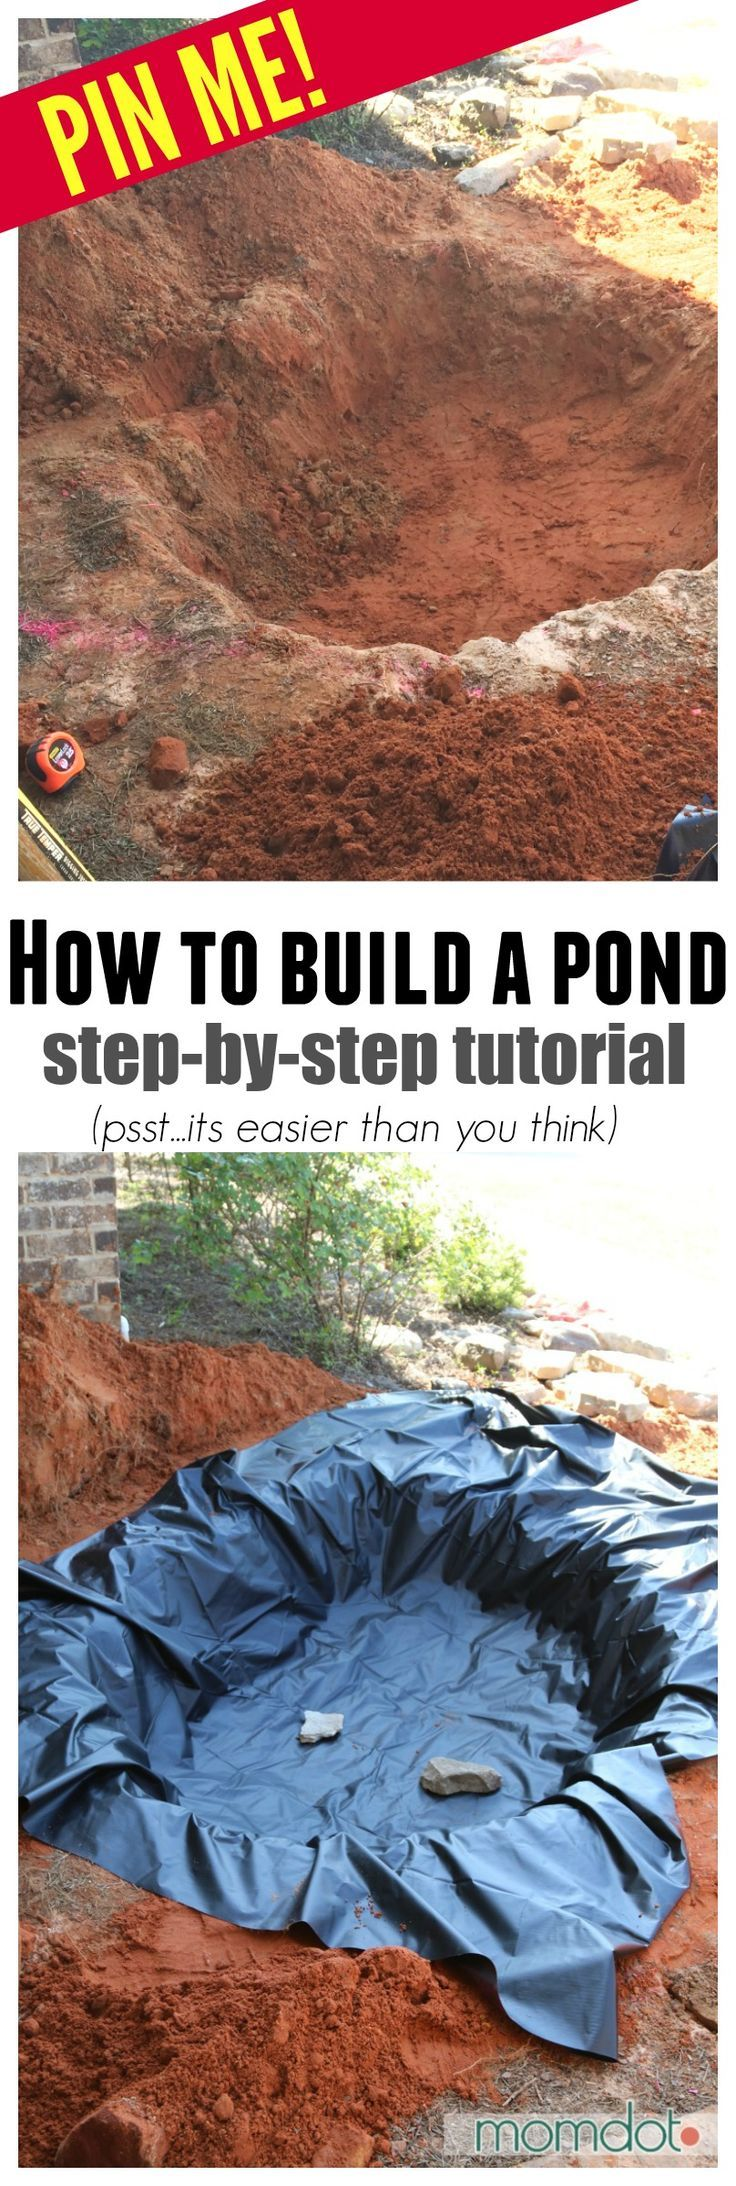 Backyard Ponds Top 25 Best Backyard Ponds Ideas On Pinterest Pond Fountains